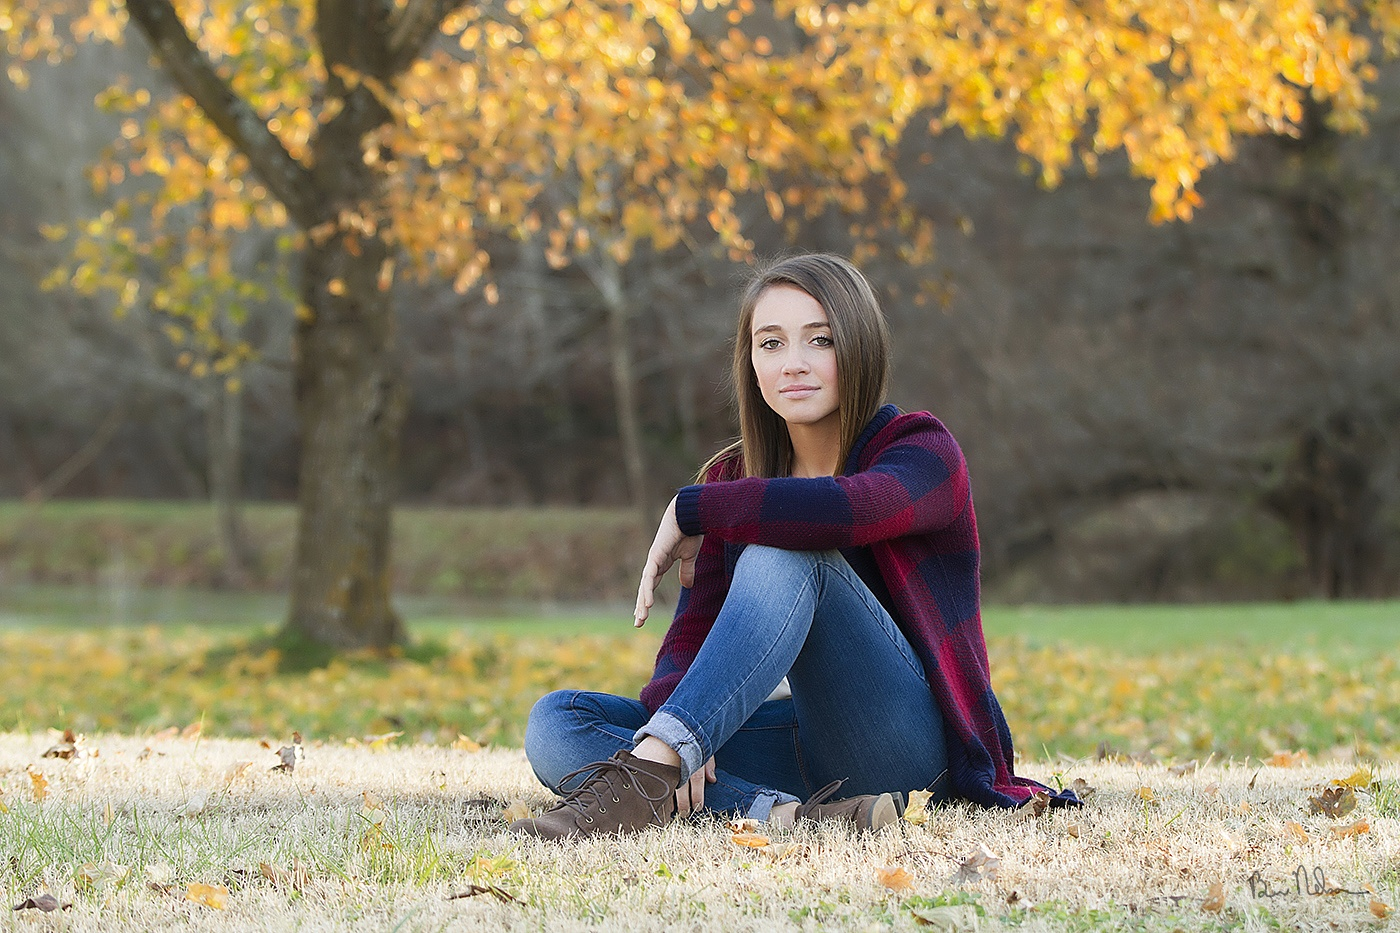 A collection of Senior Pictures and Portraits in the Springfield Missouri area by Ben Nelson - Annie Lewis Senior Picture late fall.